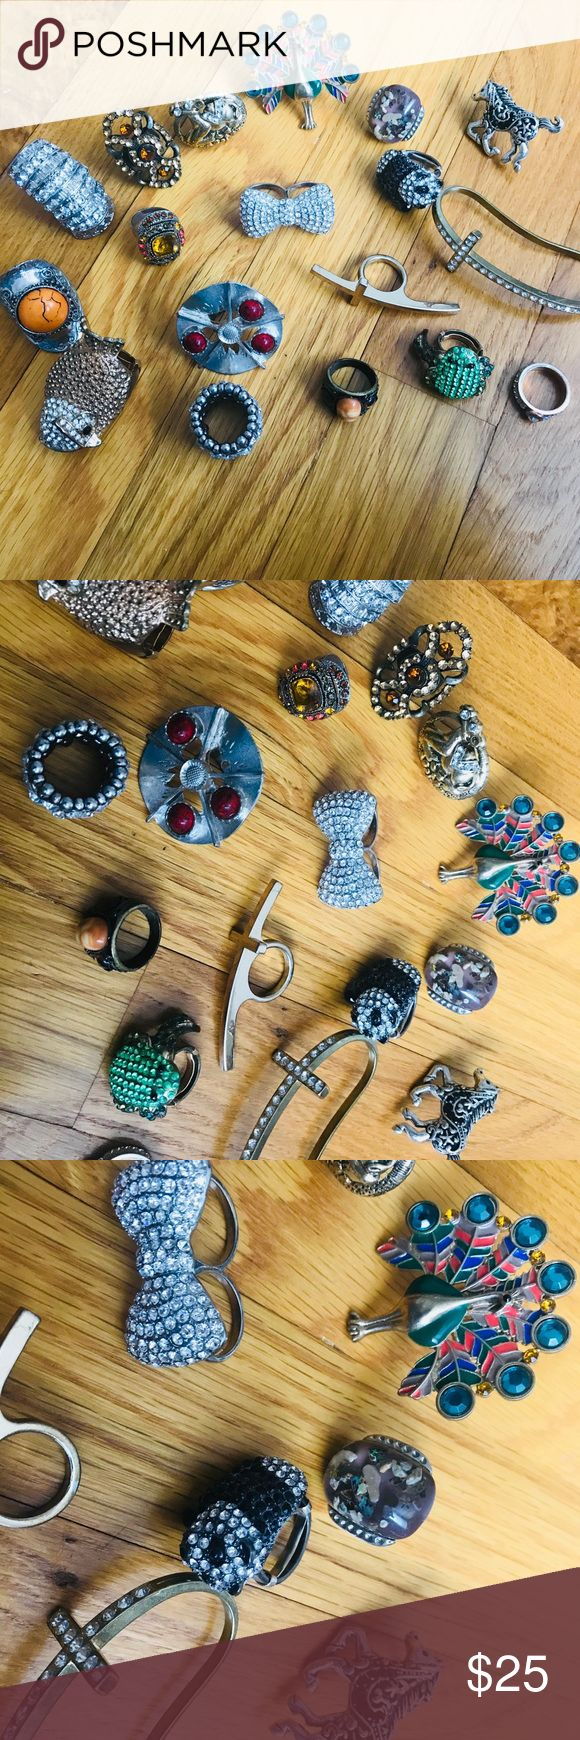 18 Fashion Rings (Including 1 Henri Bendal ring) Lot of 18 Fashion Rings - Variety  - Peacock ring - Size 7 - Panda 🐼 ring - Size 7 (with a ring adjuster on it) - Camel 🐫 ring - Adjustable  - Frog 🐸 ring - Size 6 (with a ring adjuster on it) - Owl 🦉 ring - Size 7 (with a ring adjuster on it) - Horse ring - Adjustable  - Stone rings - All are adjustable  - Cross rings - Size 6 - Bling rings - (Two of them Size 6; The other is a stretchy ring) - 1 Henri Bendal ring - Size 6 Jewelry Rings